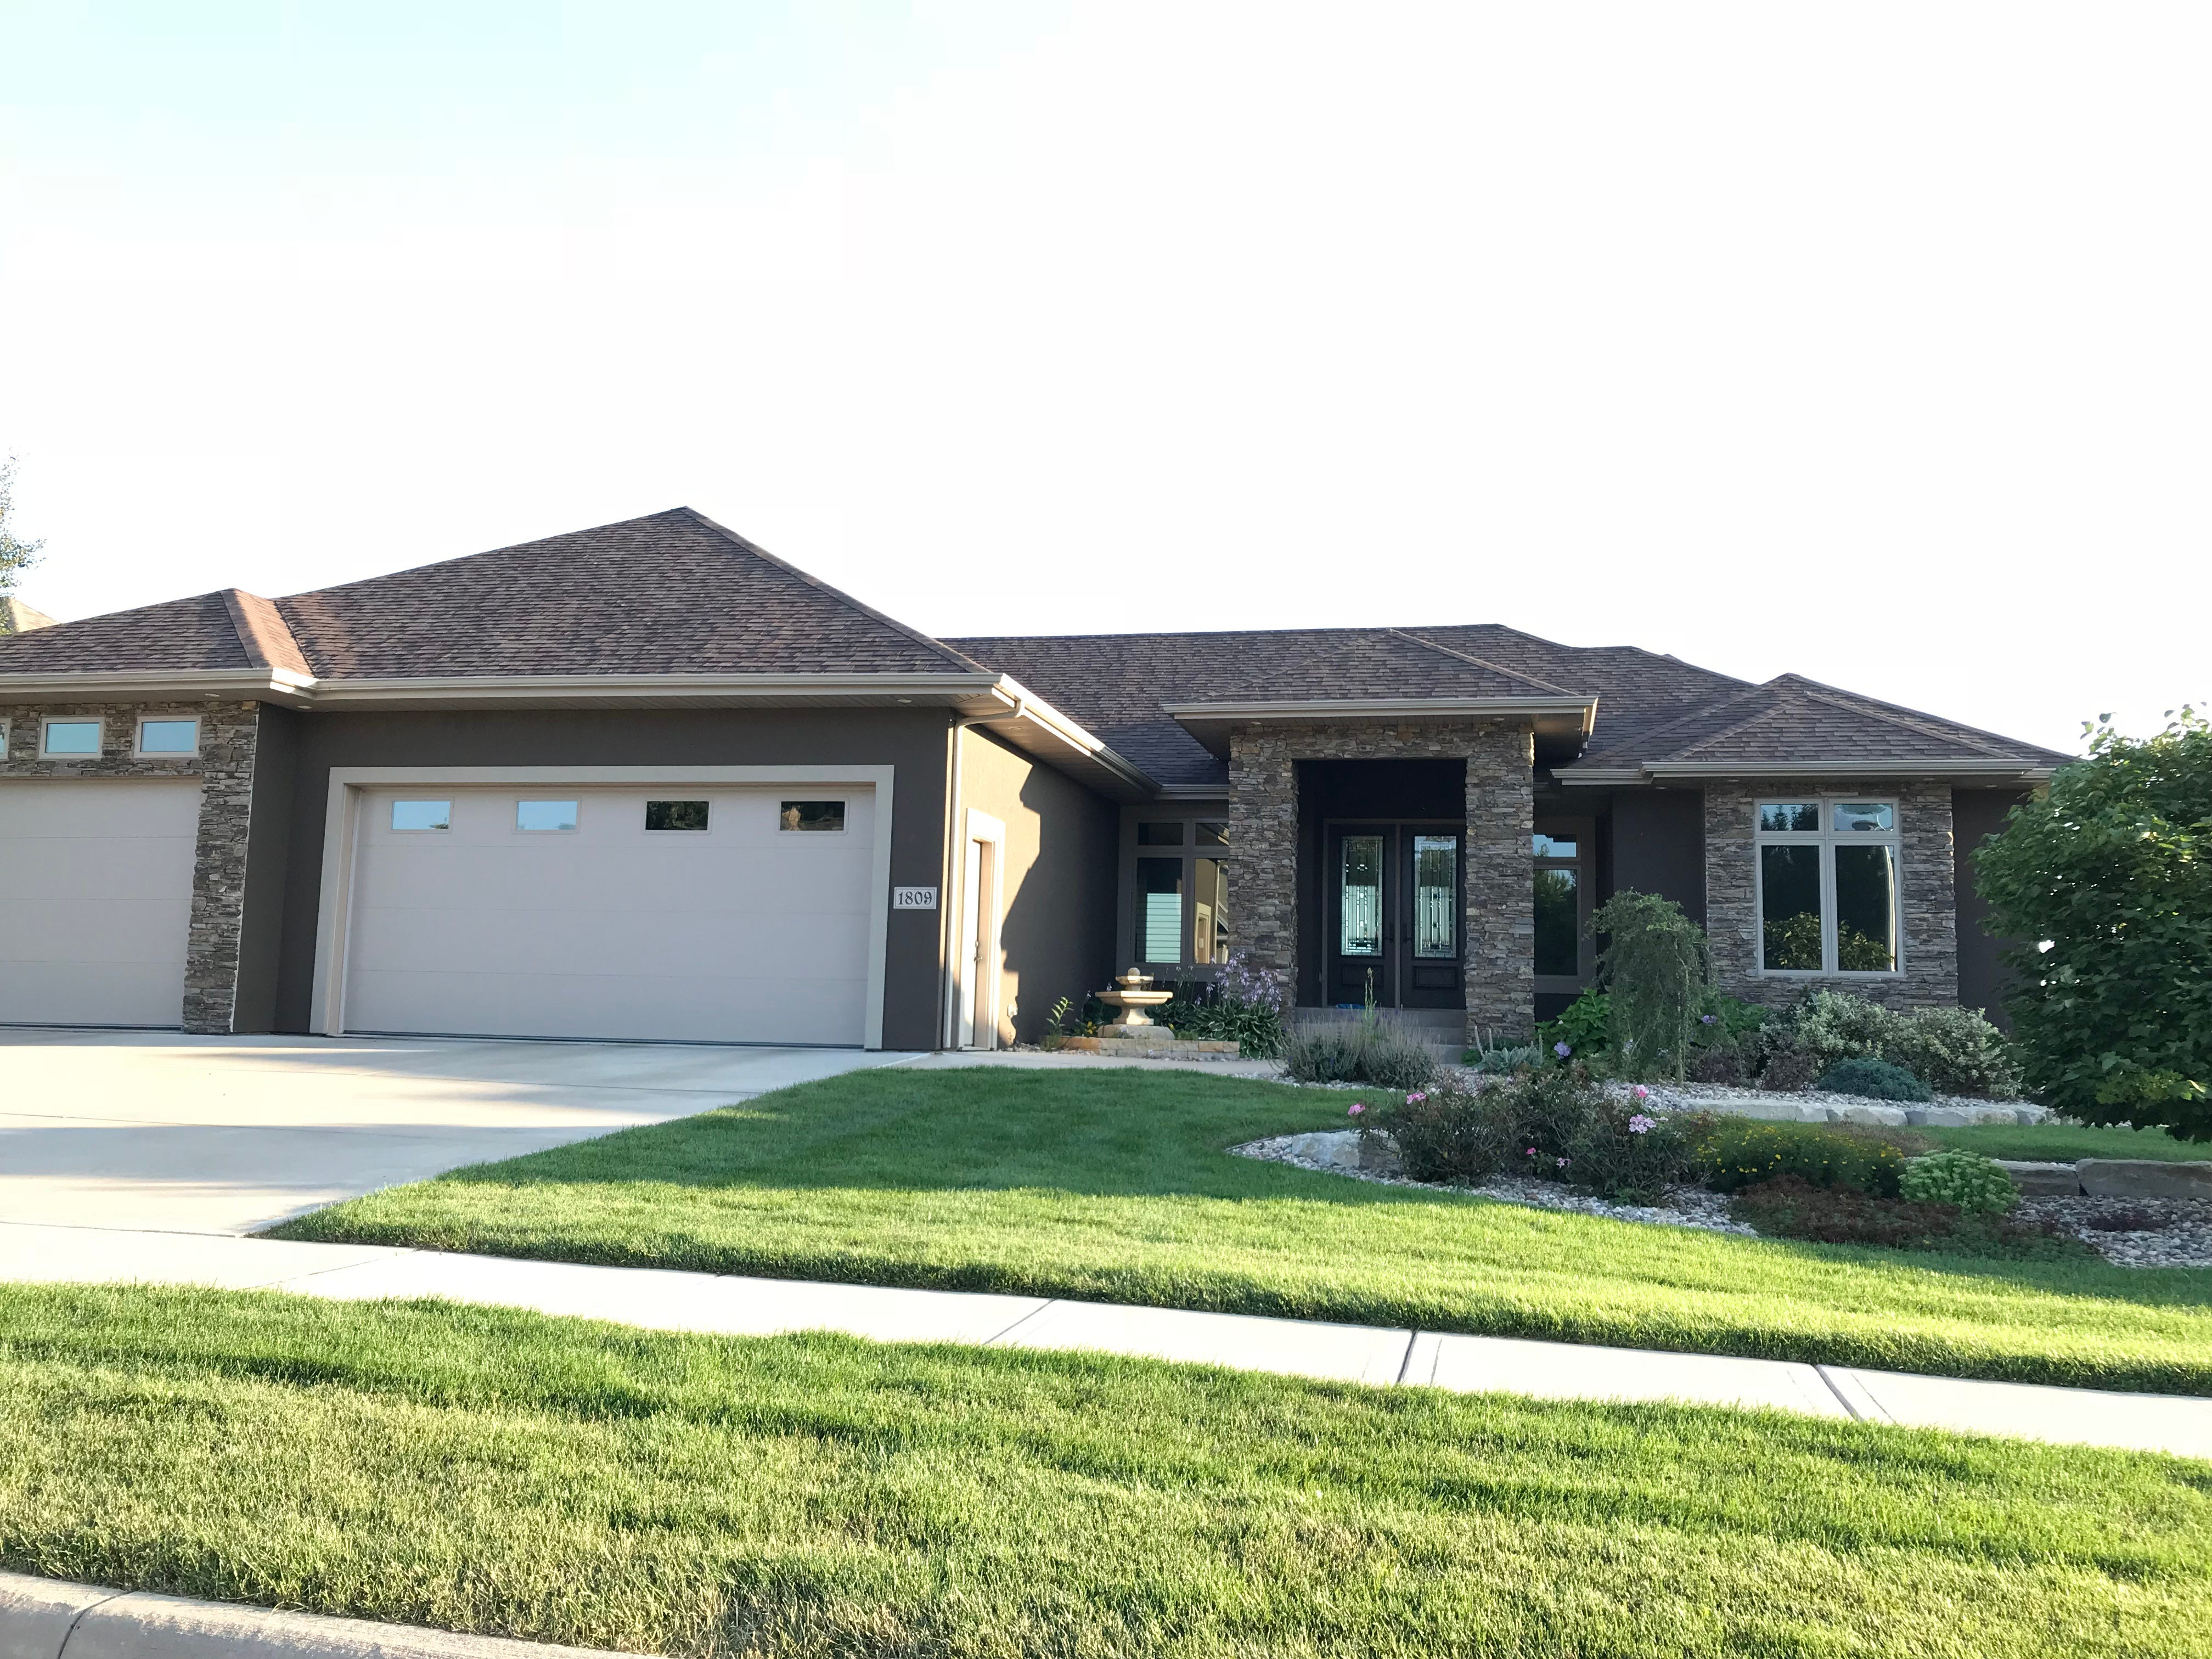 This east-side Sioux Falls home at 1809 S. Copper Creek Circle topped our home sales list for the week ending July 6, selling for $670,000.